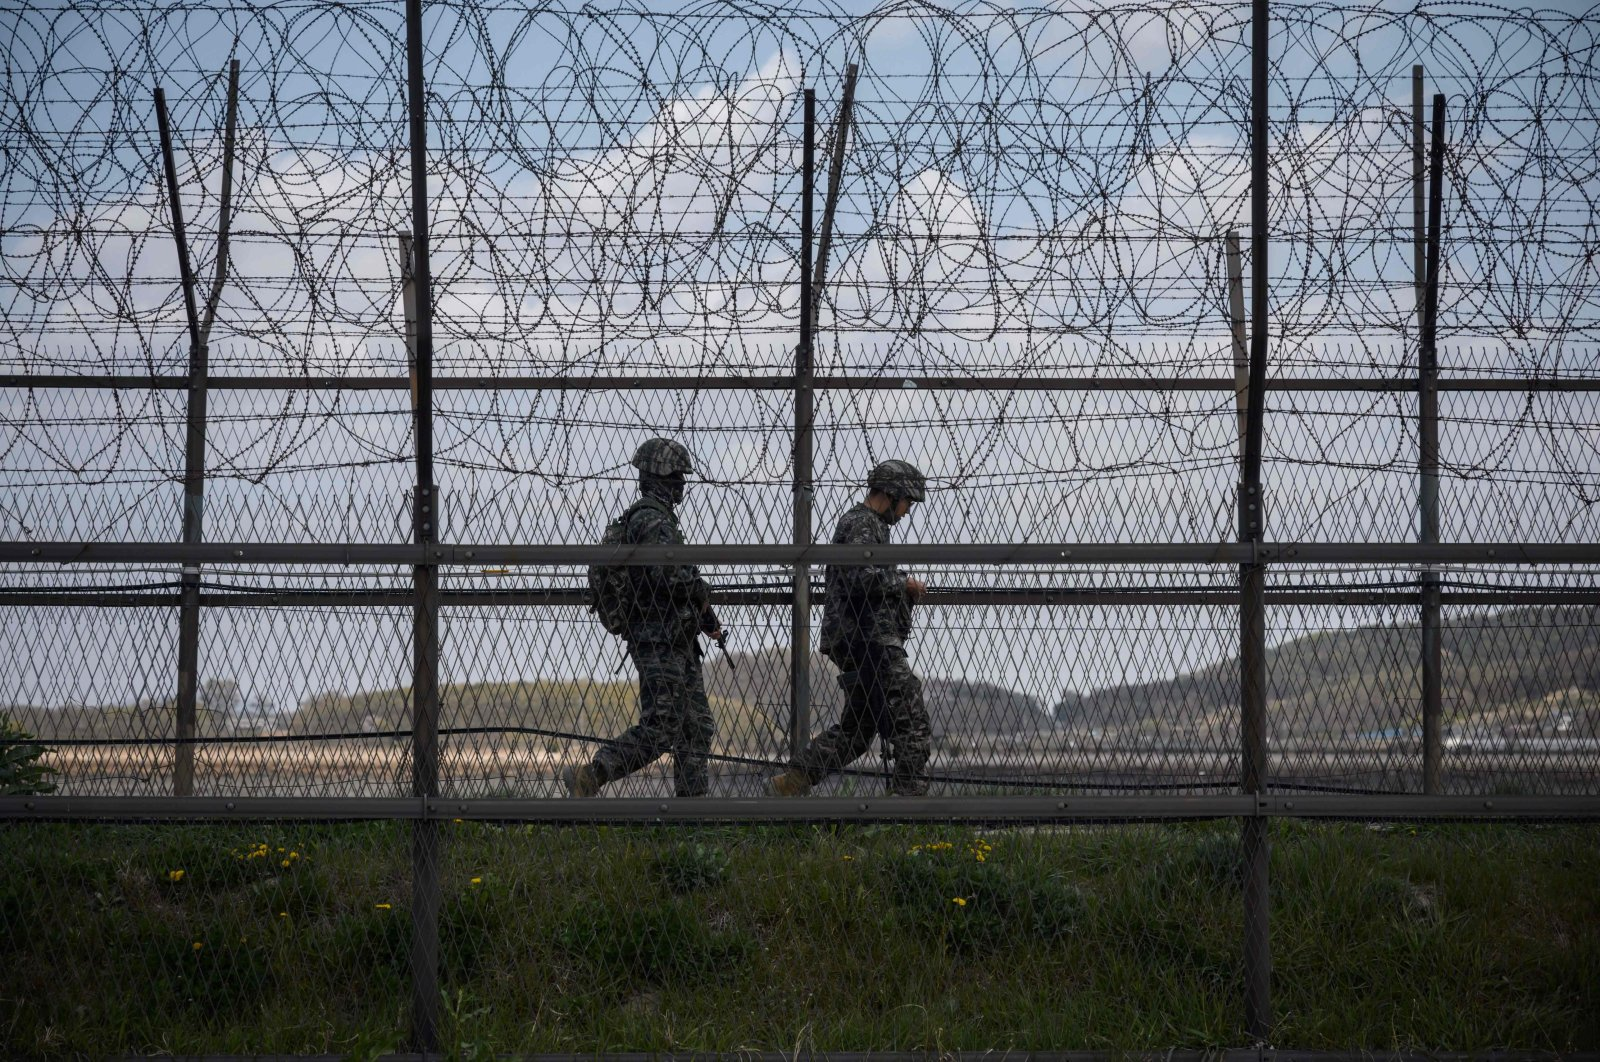 South Korean soldiers patrolling along a barbed wire fence Demilitarized Zone (DMZ) separating North and South Korea, on the South Korean island of Ganghwa, April 23, 2020. (AFP Photo)